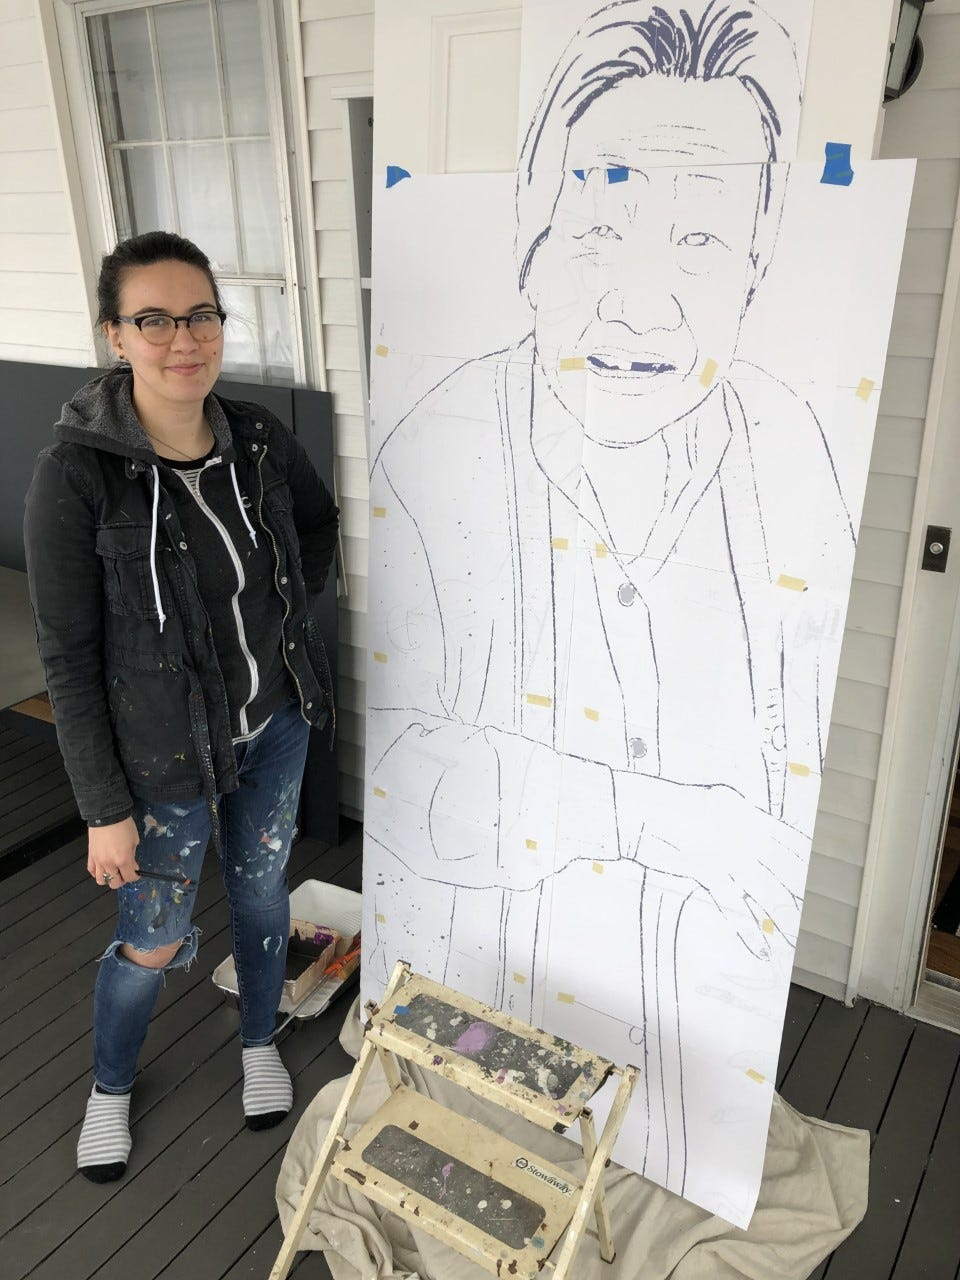 Artist speaks out after anti-Asian vandalism in Newton